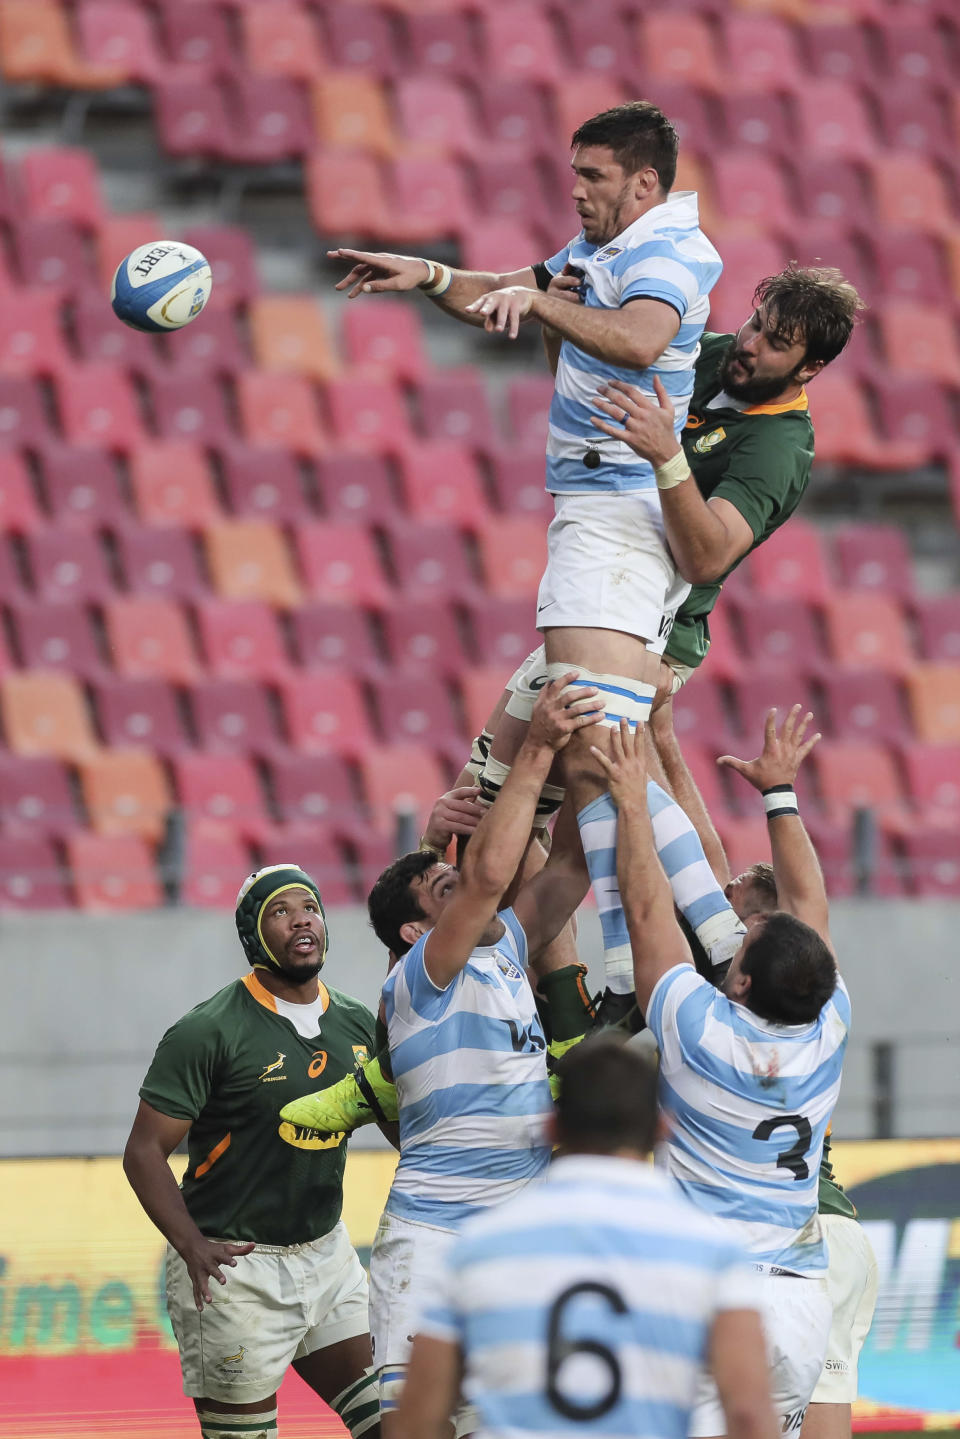 Rodrigo Bruni of Argentina, left, is challenged by Franco Mostert of South Africa in a line out during the second Rugby Championship match between Argentina and South Africa at the Nelson Mandela Bay Stadium, Gqebeha, South Africa, Saturday, Aug. 21, 2021. (AP Photo/Halden Krog)